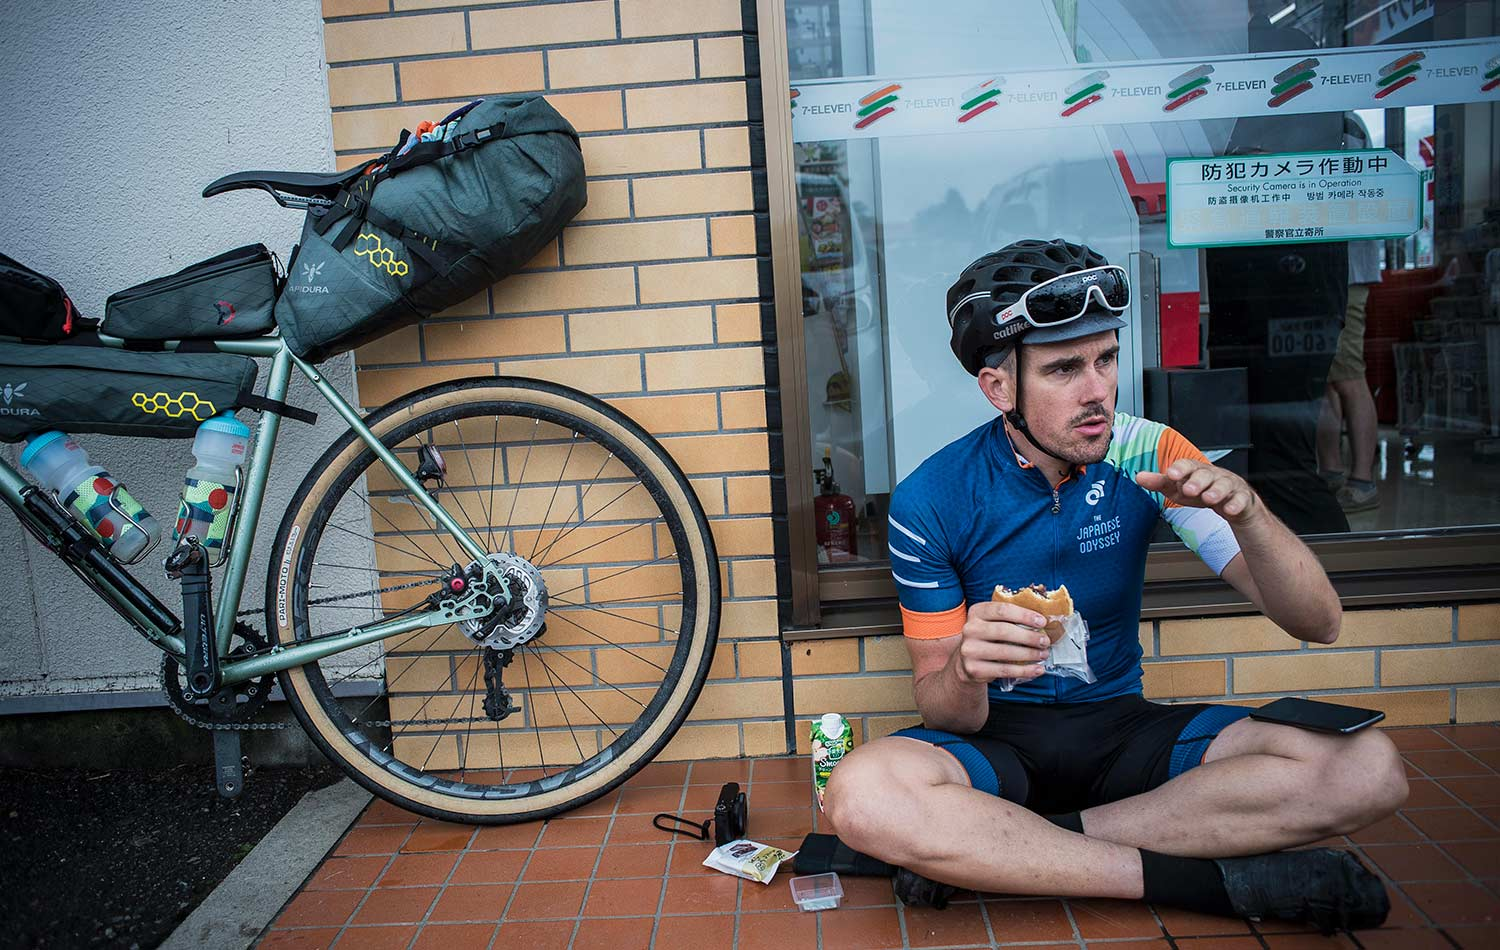 lunch stop on the japanese odyssey bike ride in Japan